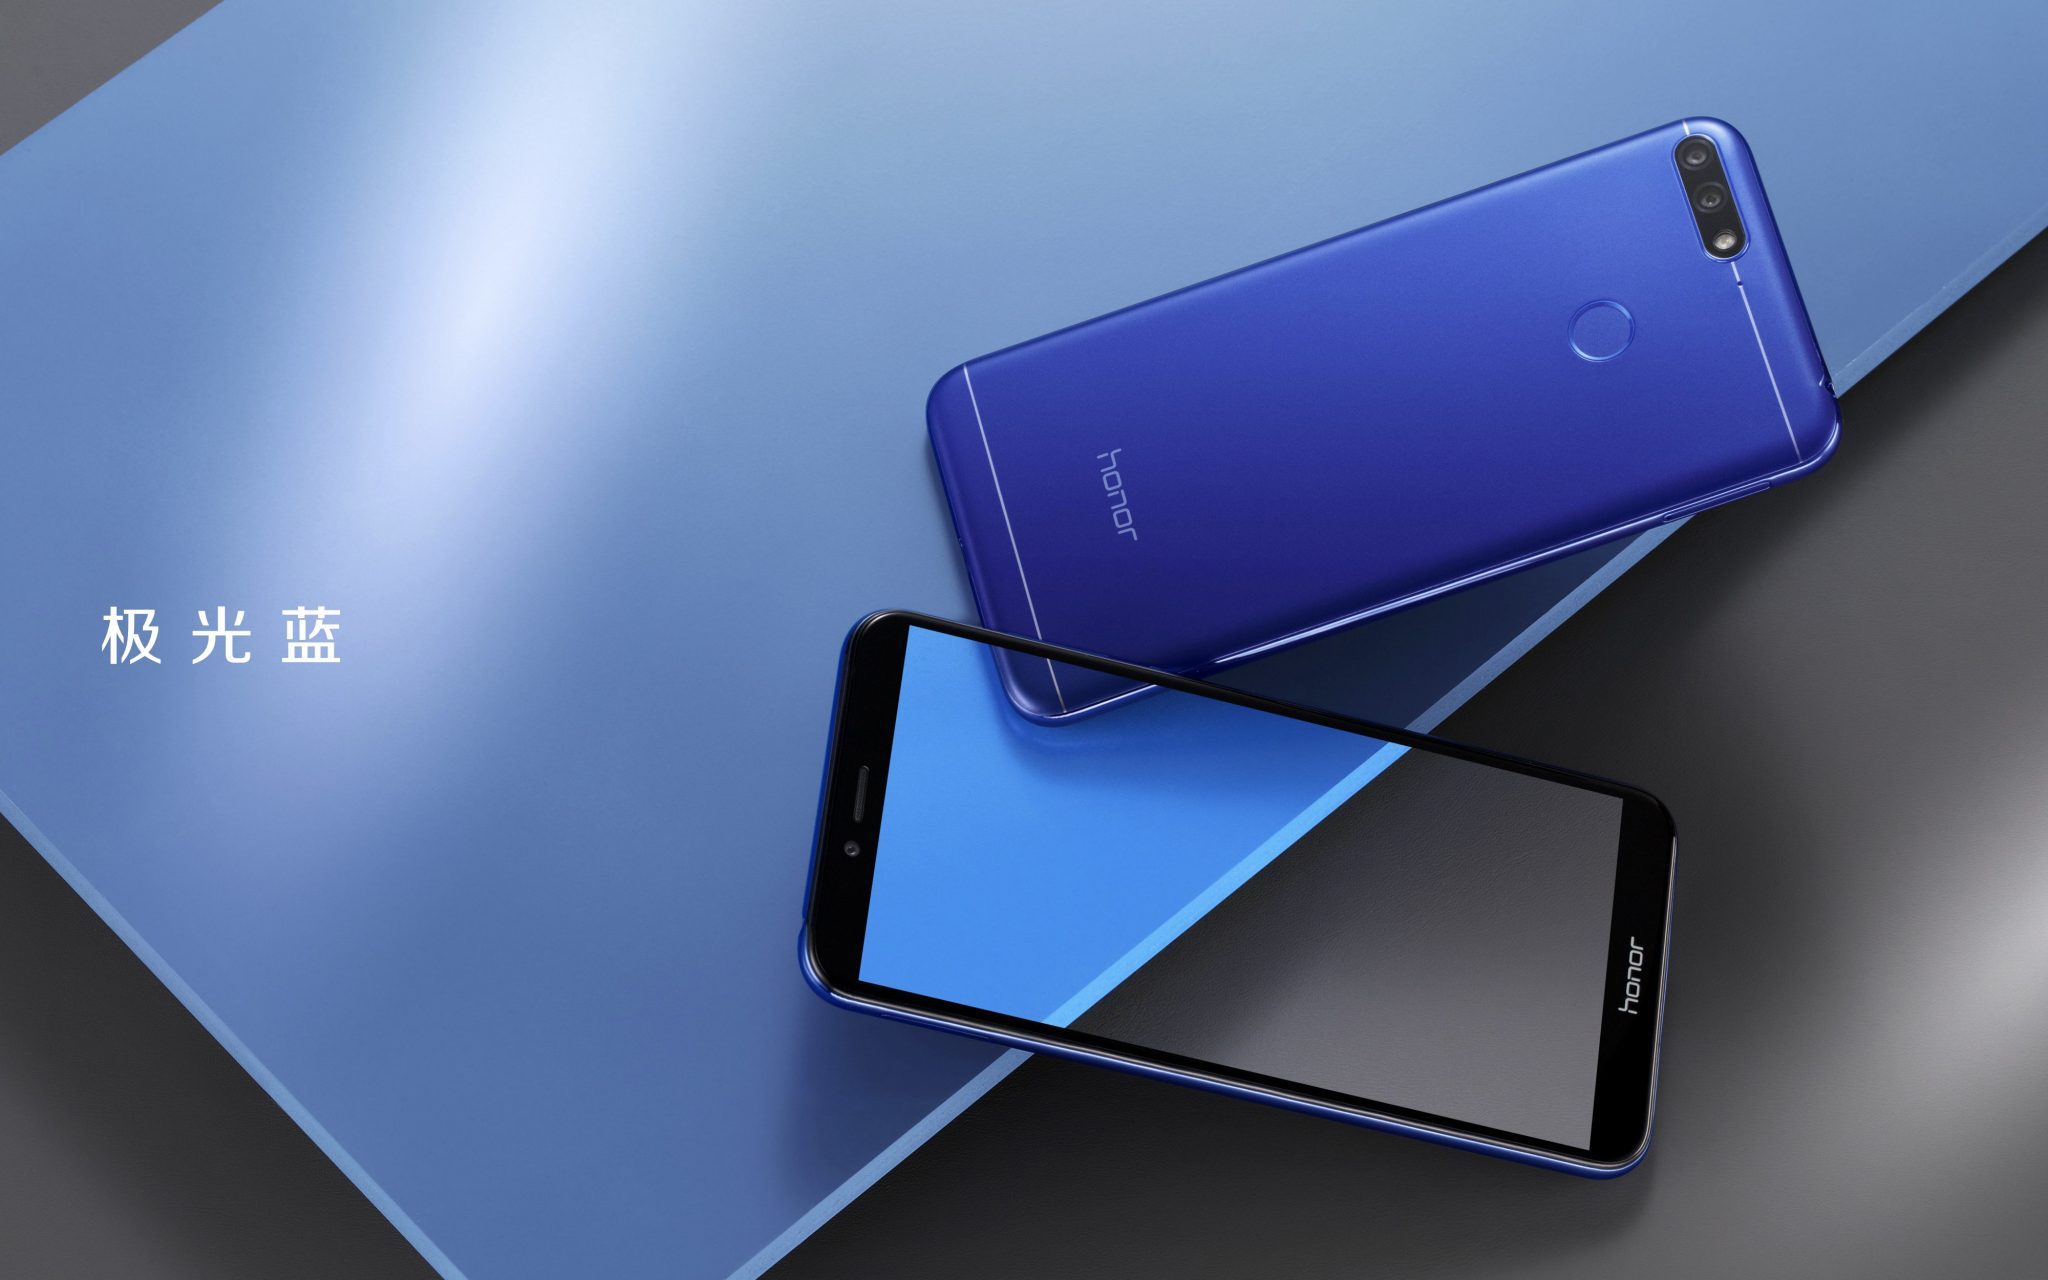 Honor 7A is now official with Snapdragon 430, 18:9 display & dual cameras 4